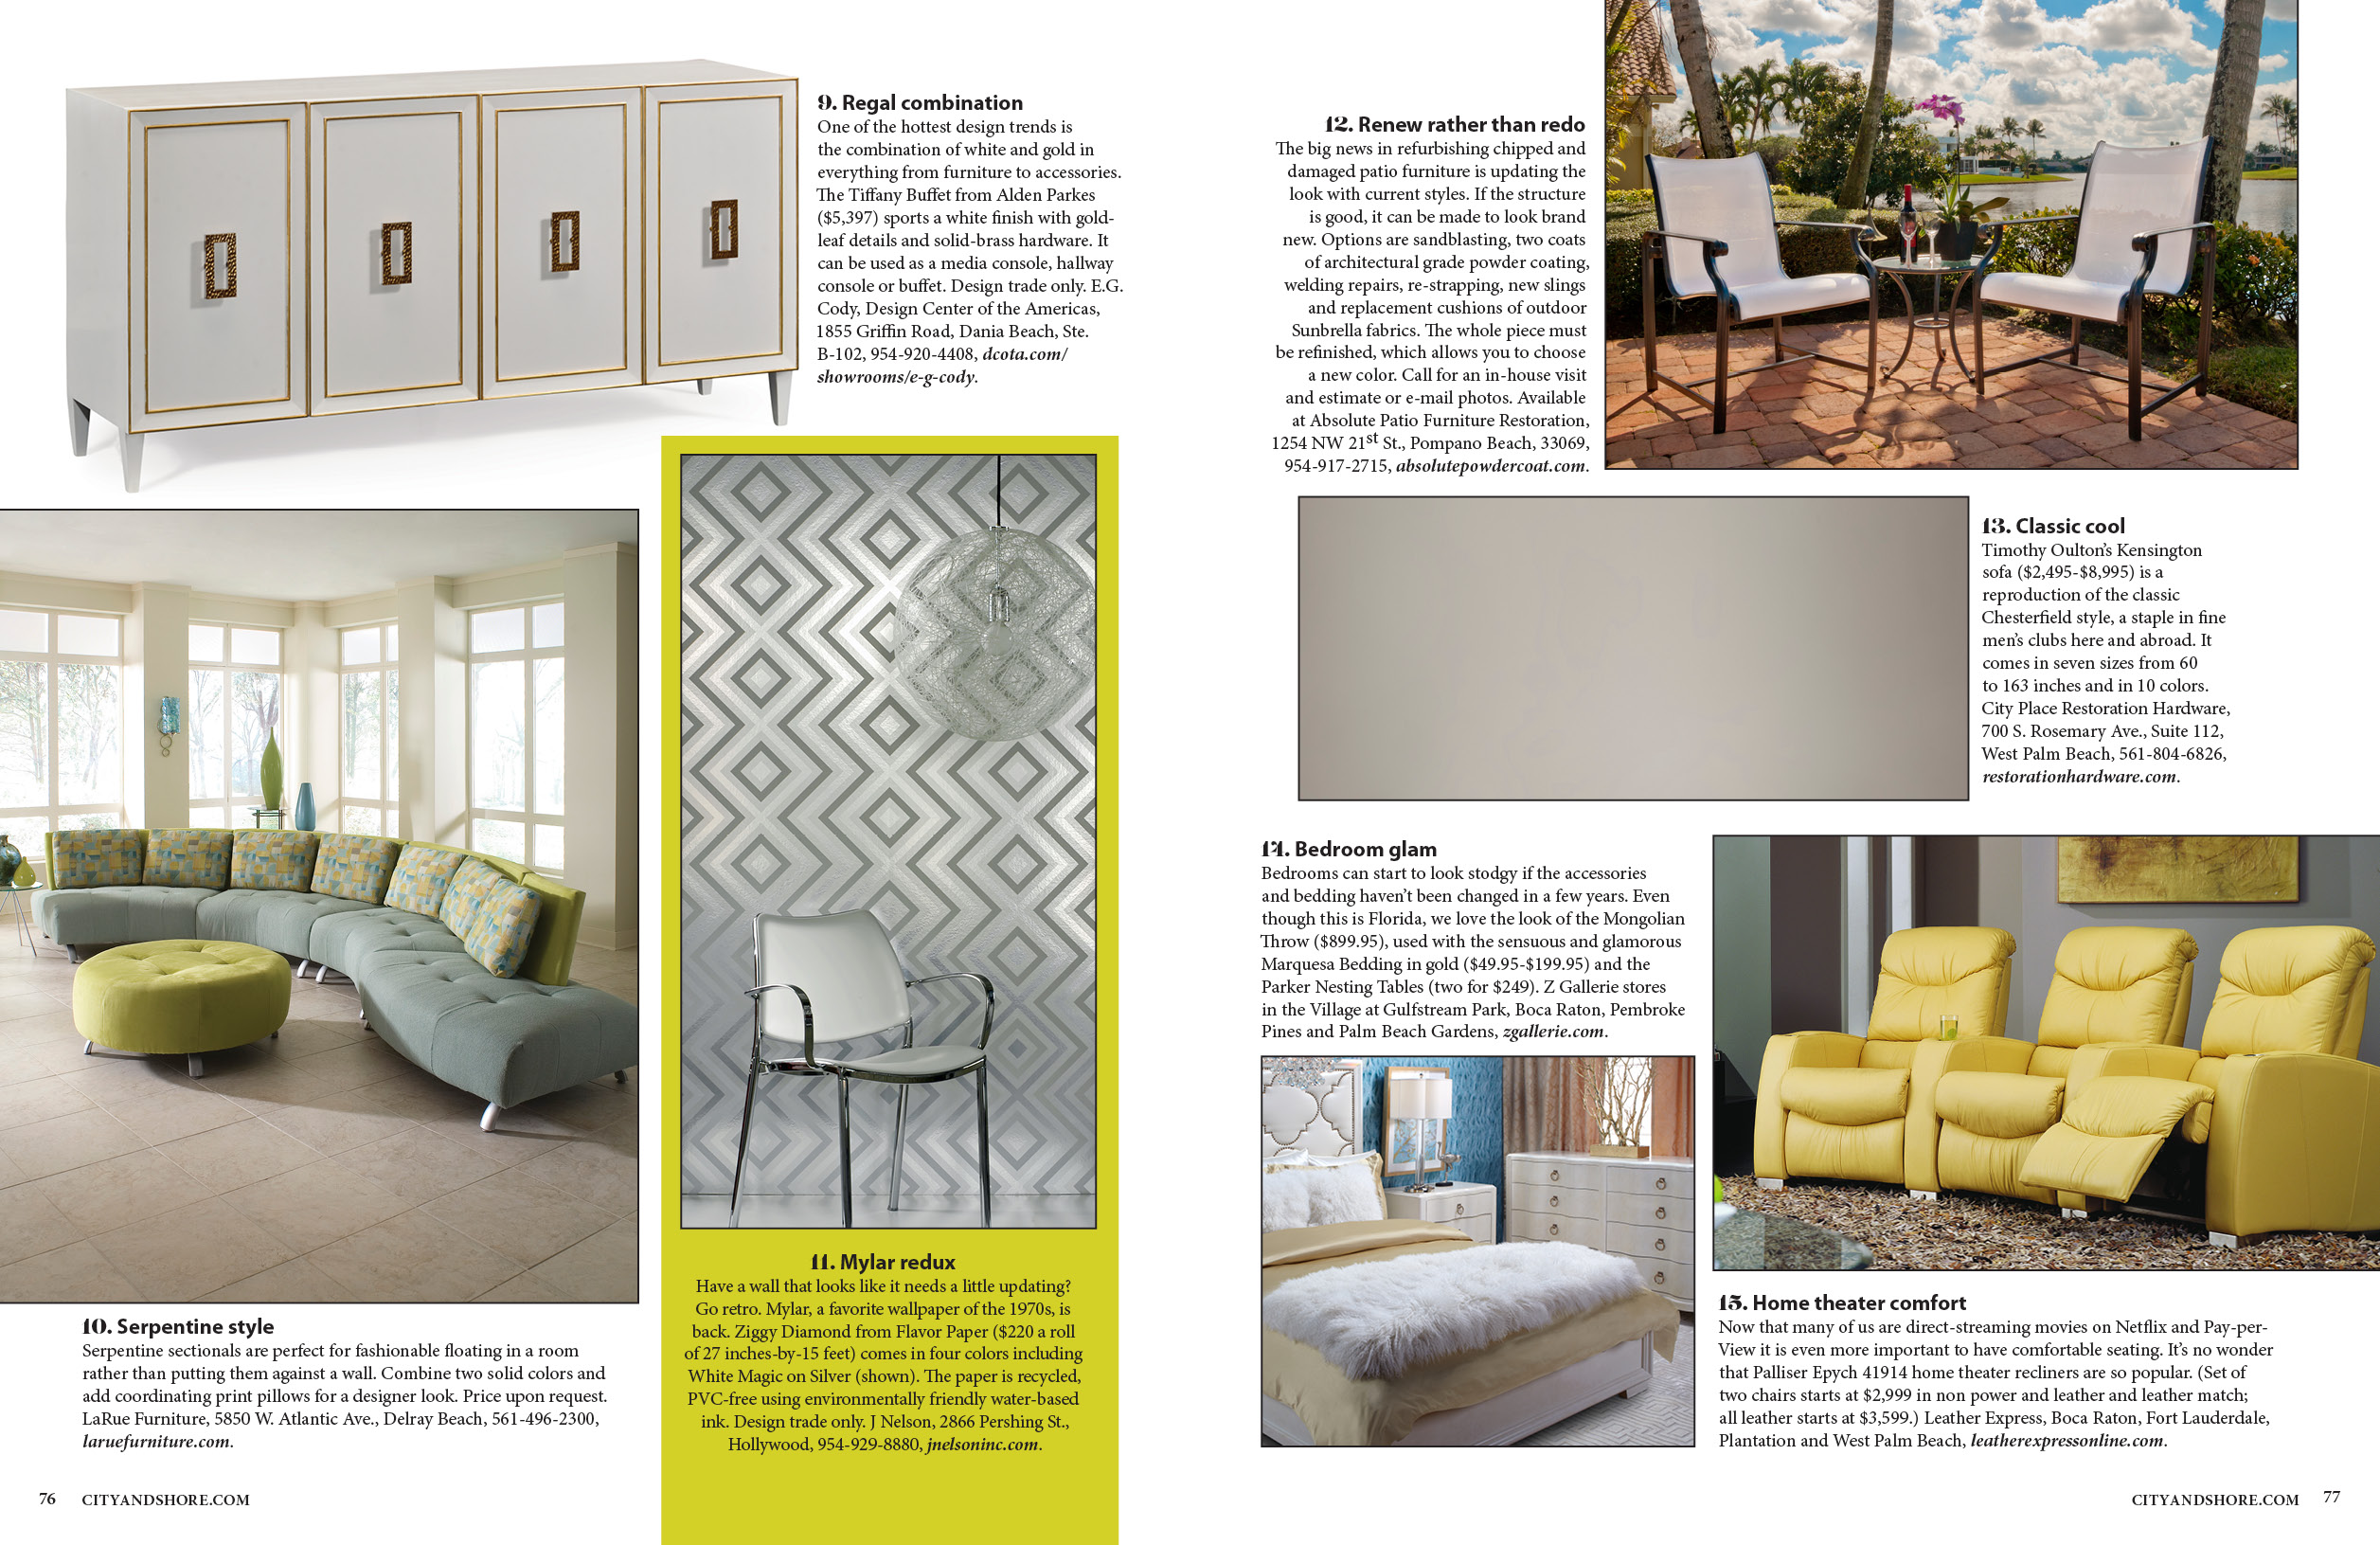 15 ways to refresh home (without renovation) | City & Shore Magazine